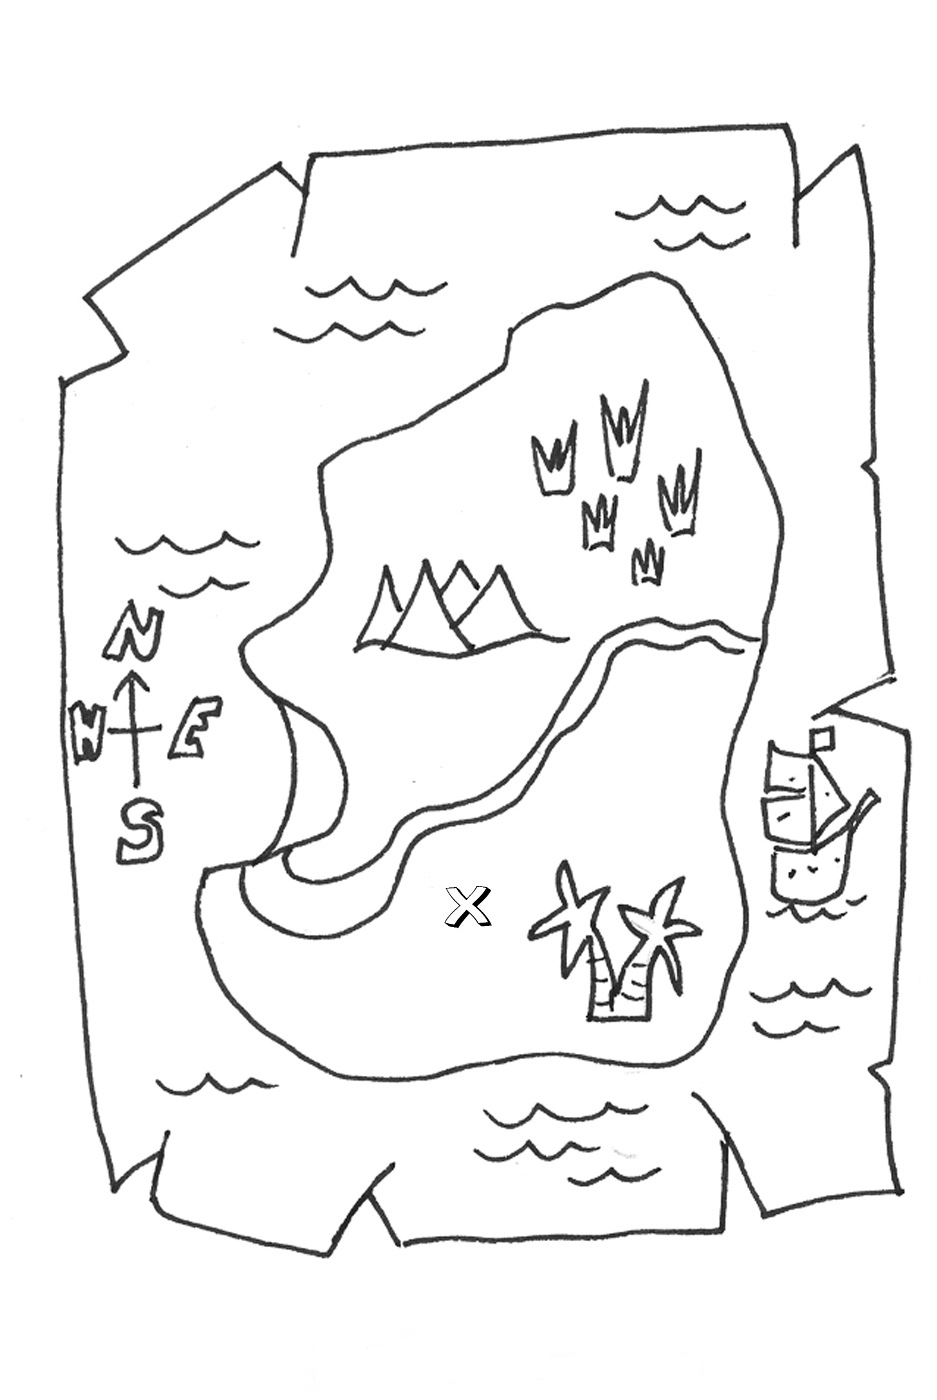 coloring pages of a map - photo#5